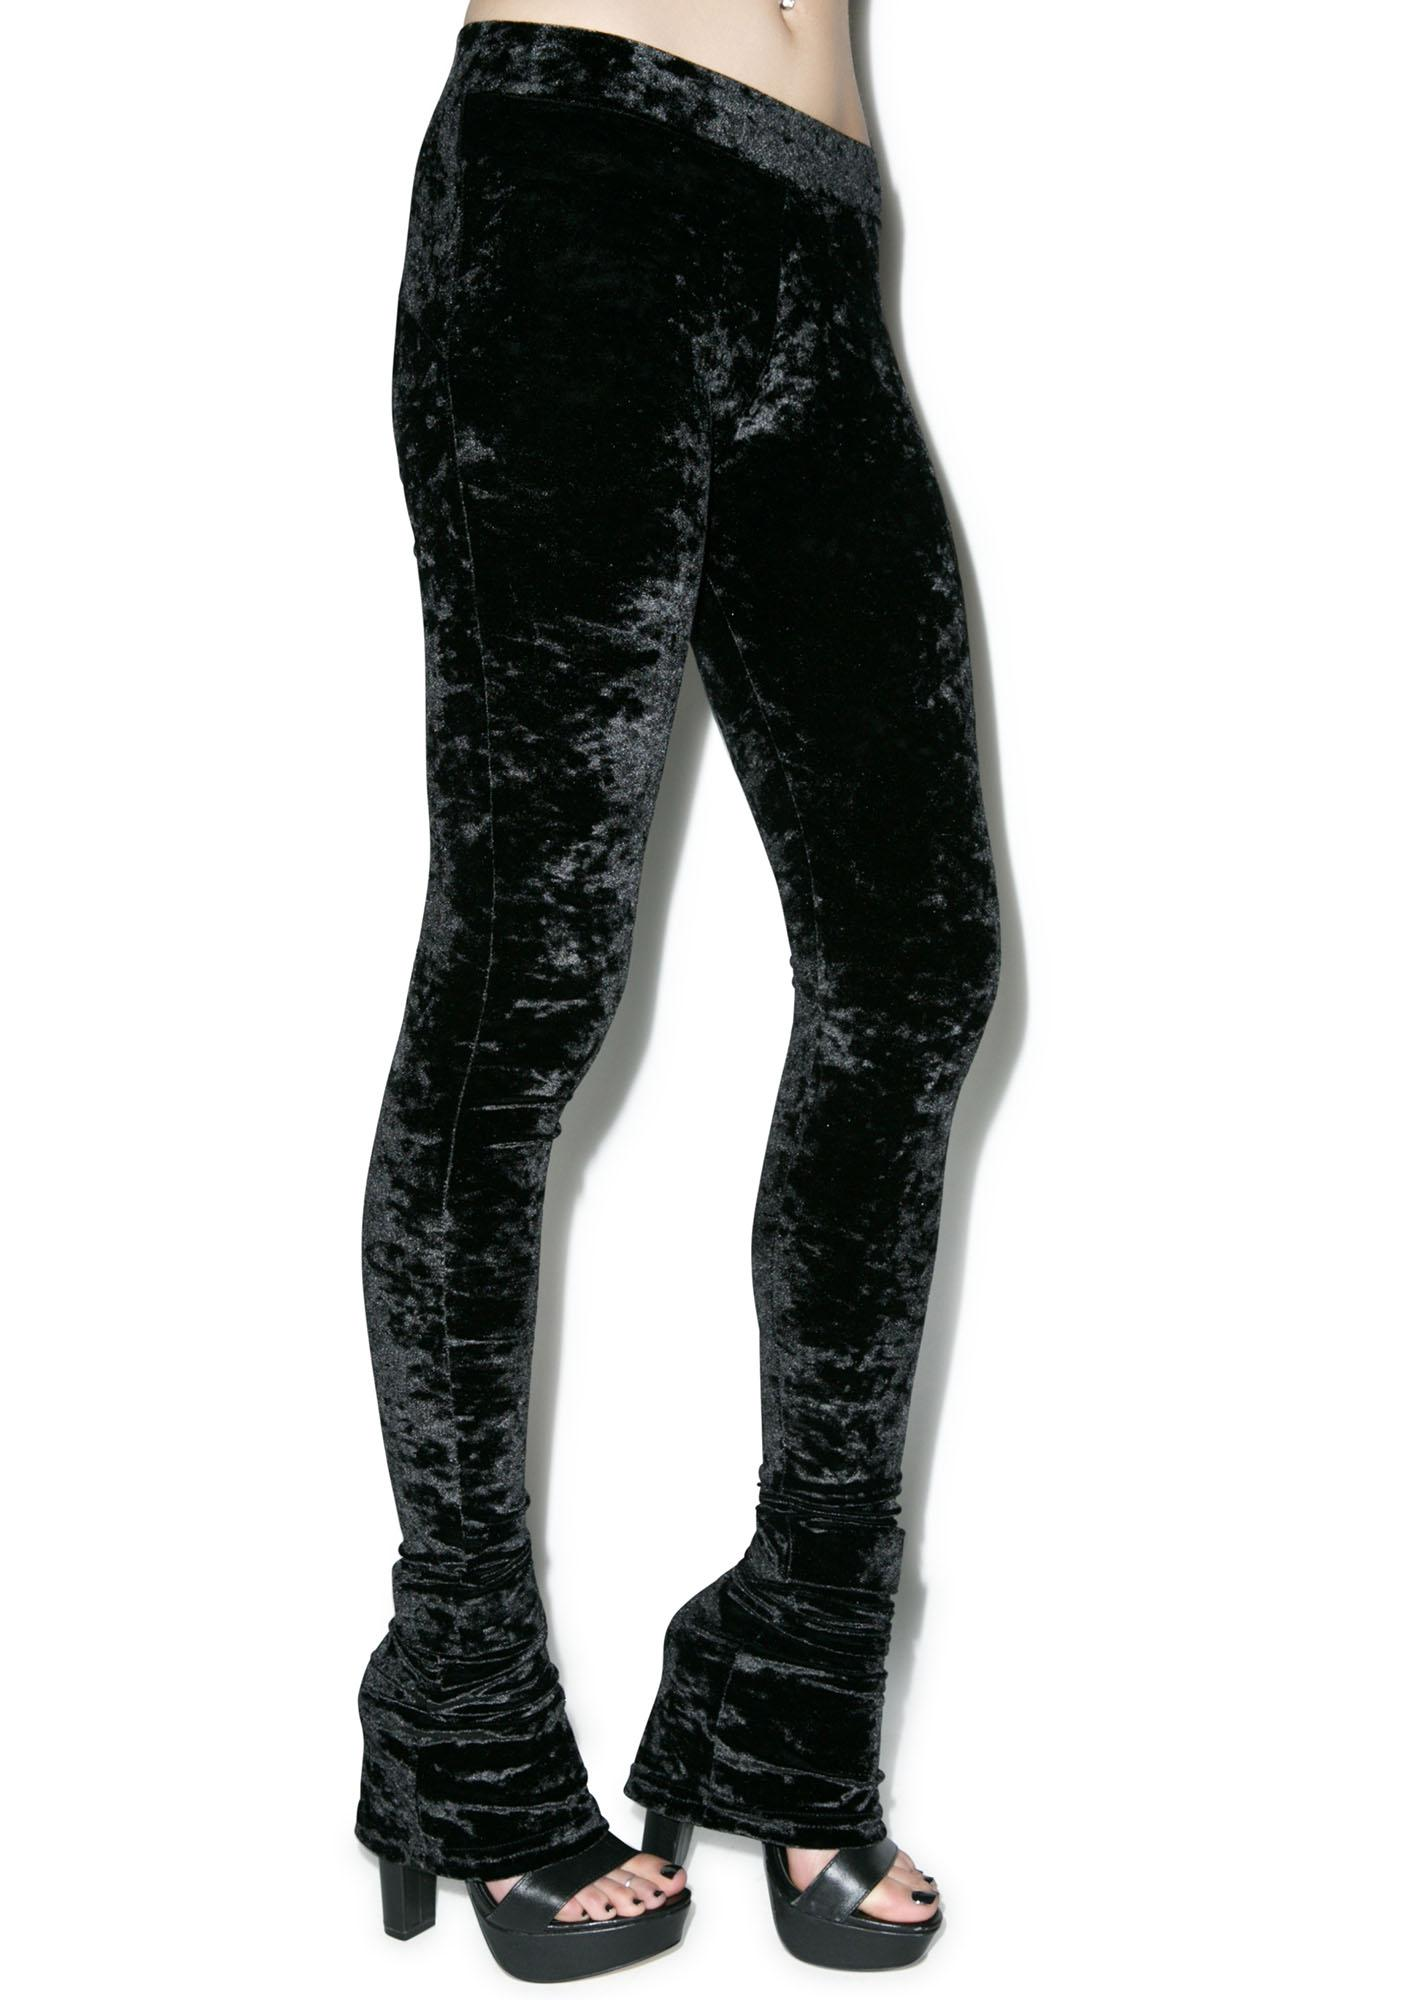 Black Wednesday The Ritual Pant